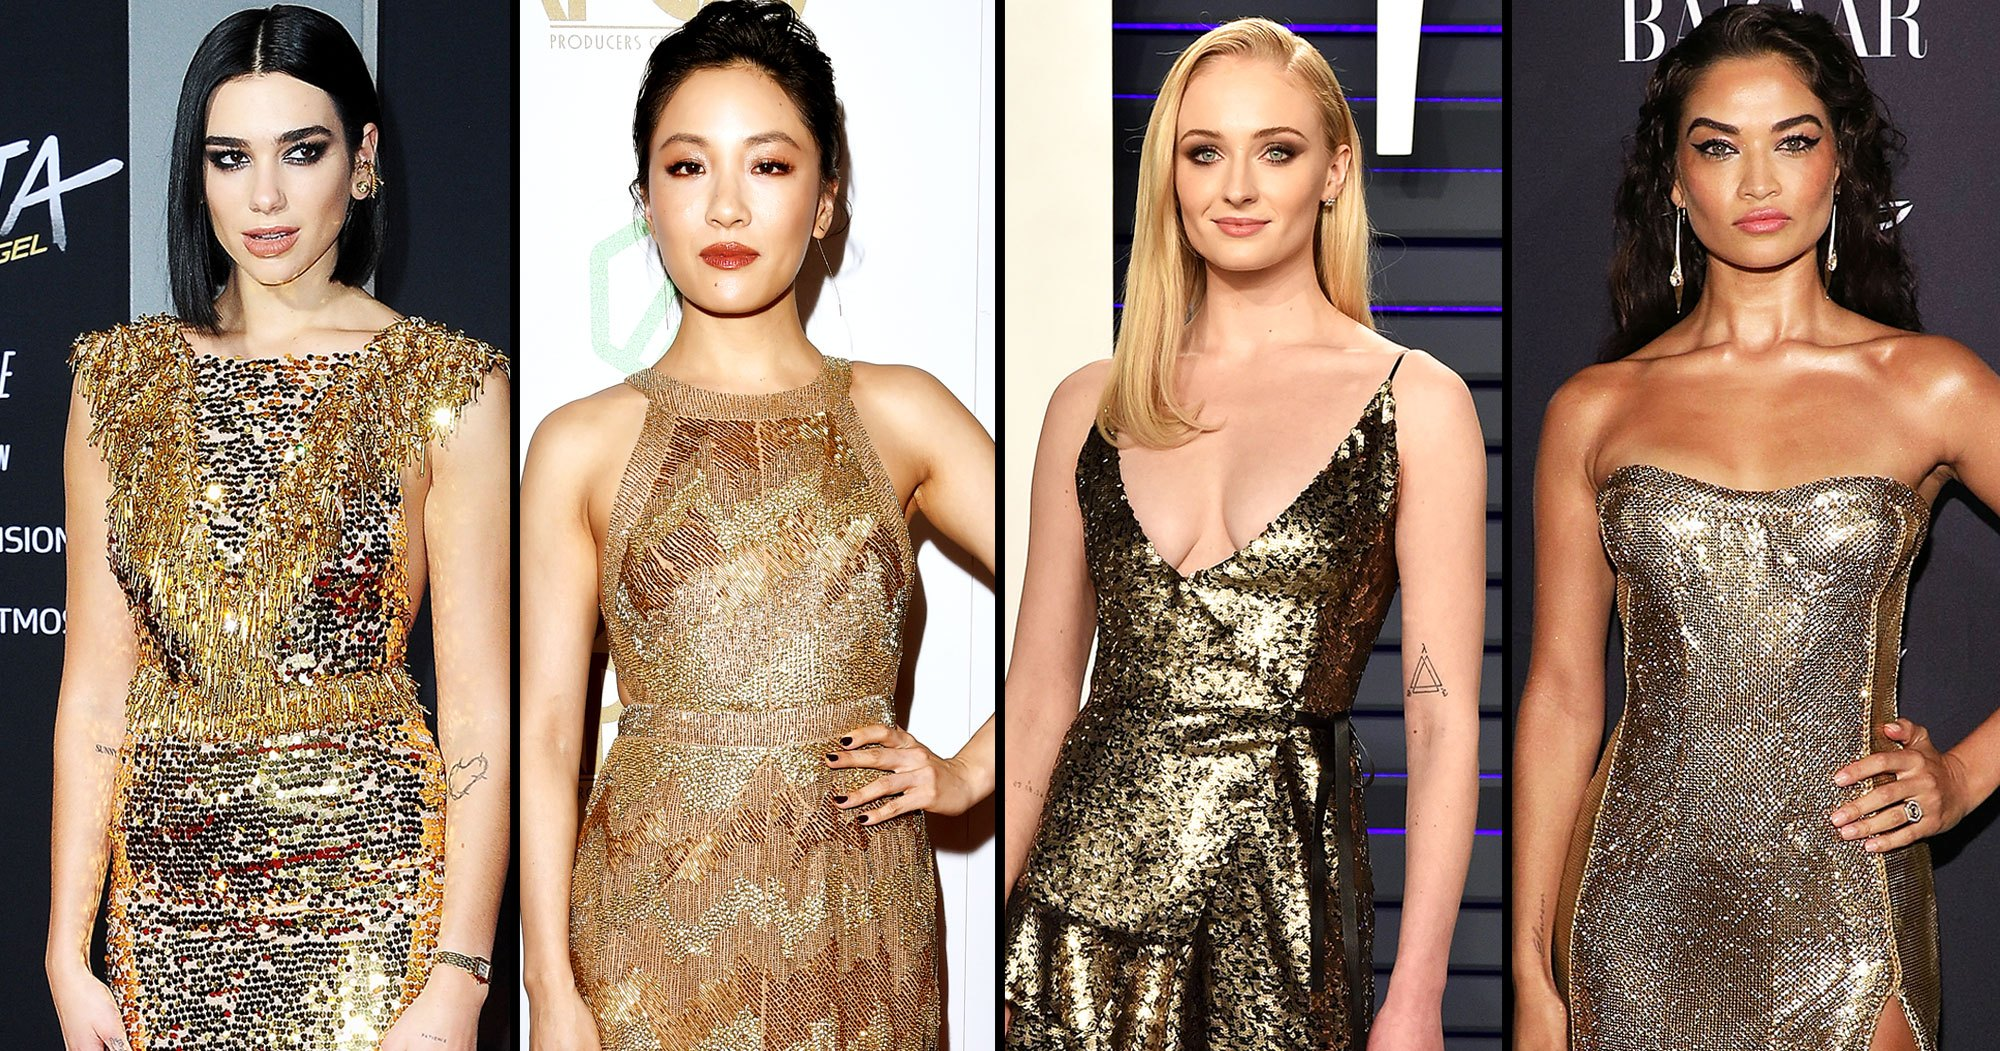 Celebs Strike Gold on the Red Carpet: See the Top 10 Sparkling Looks